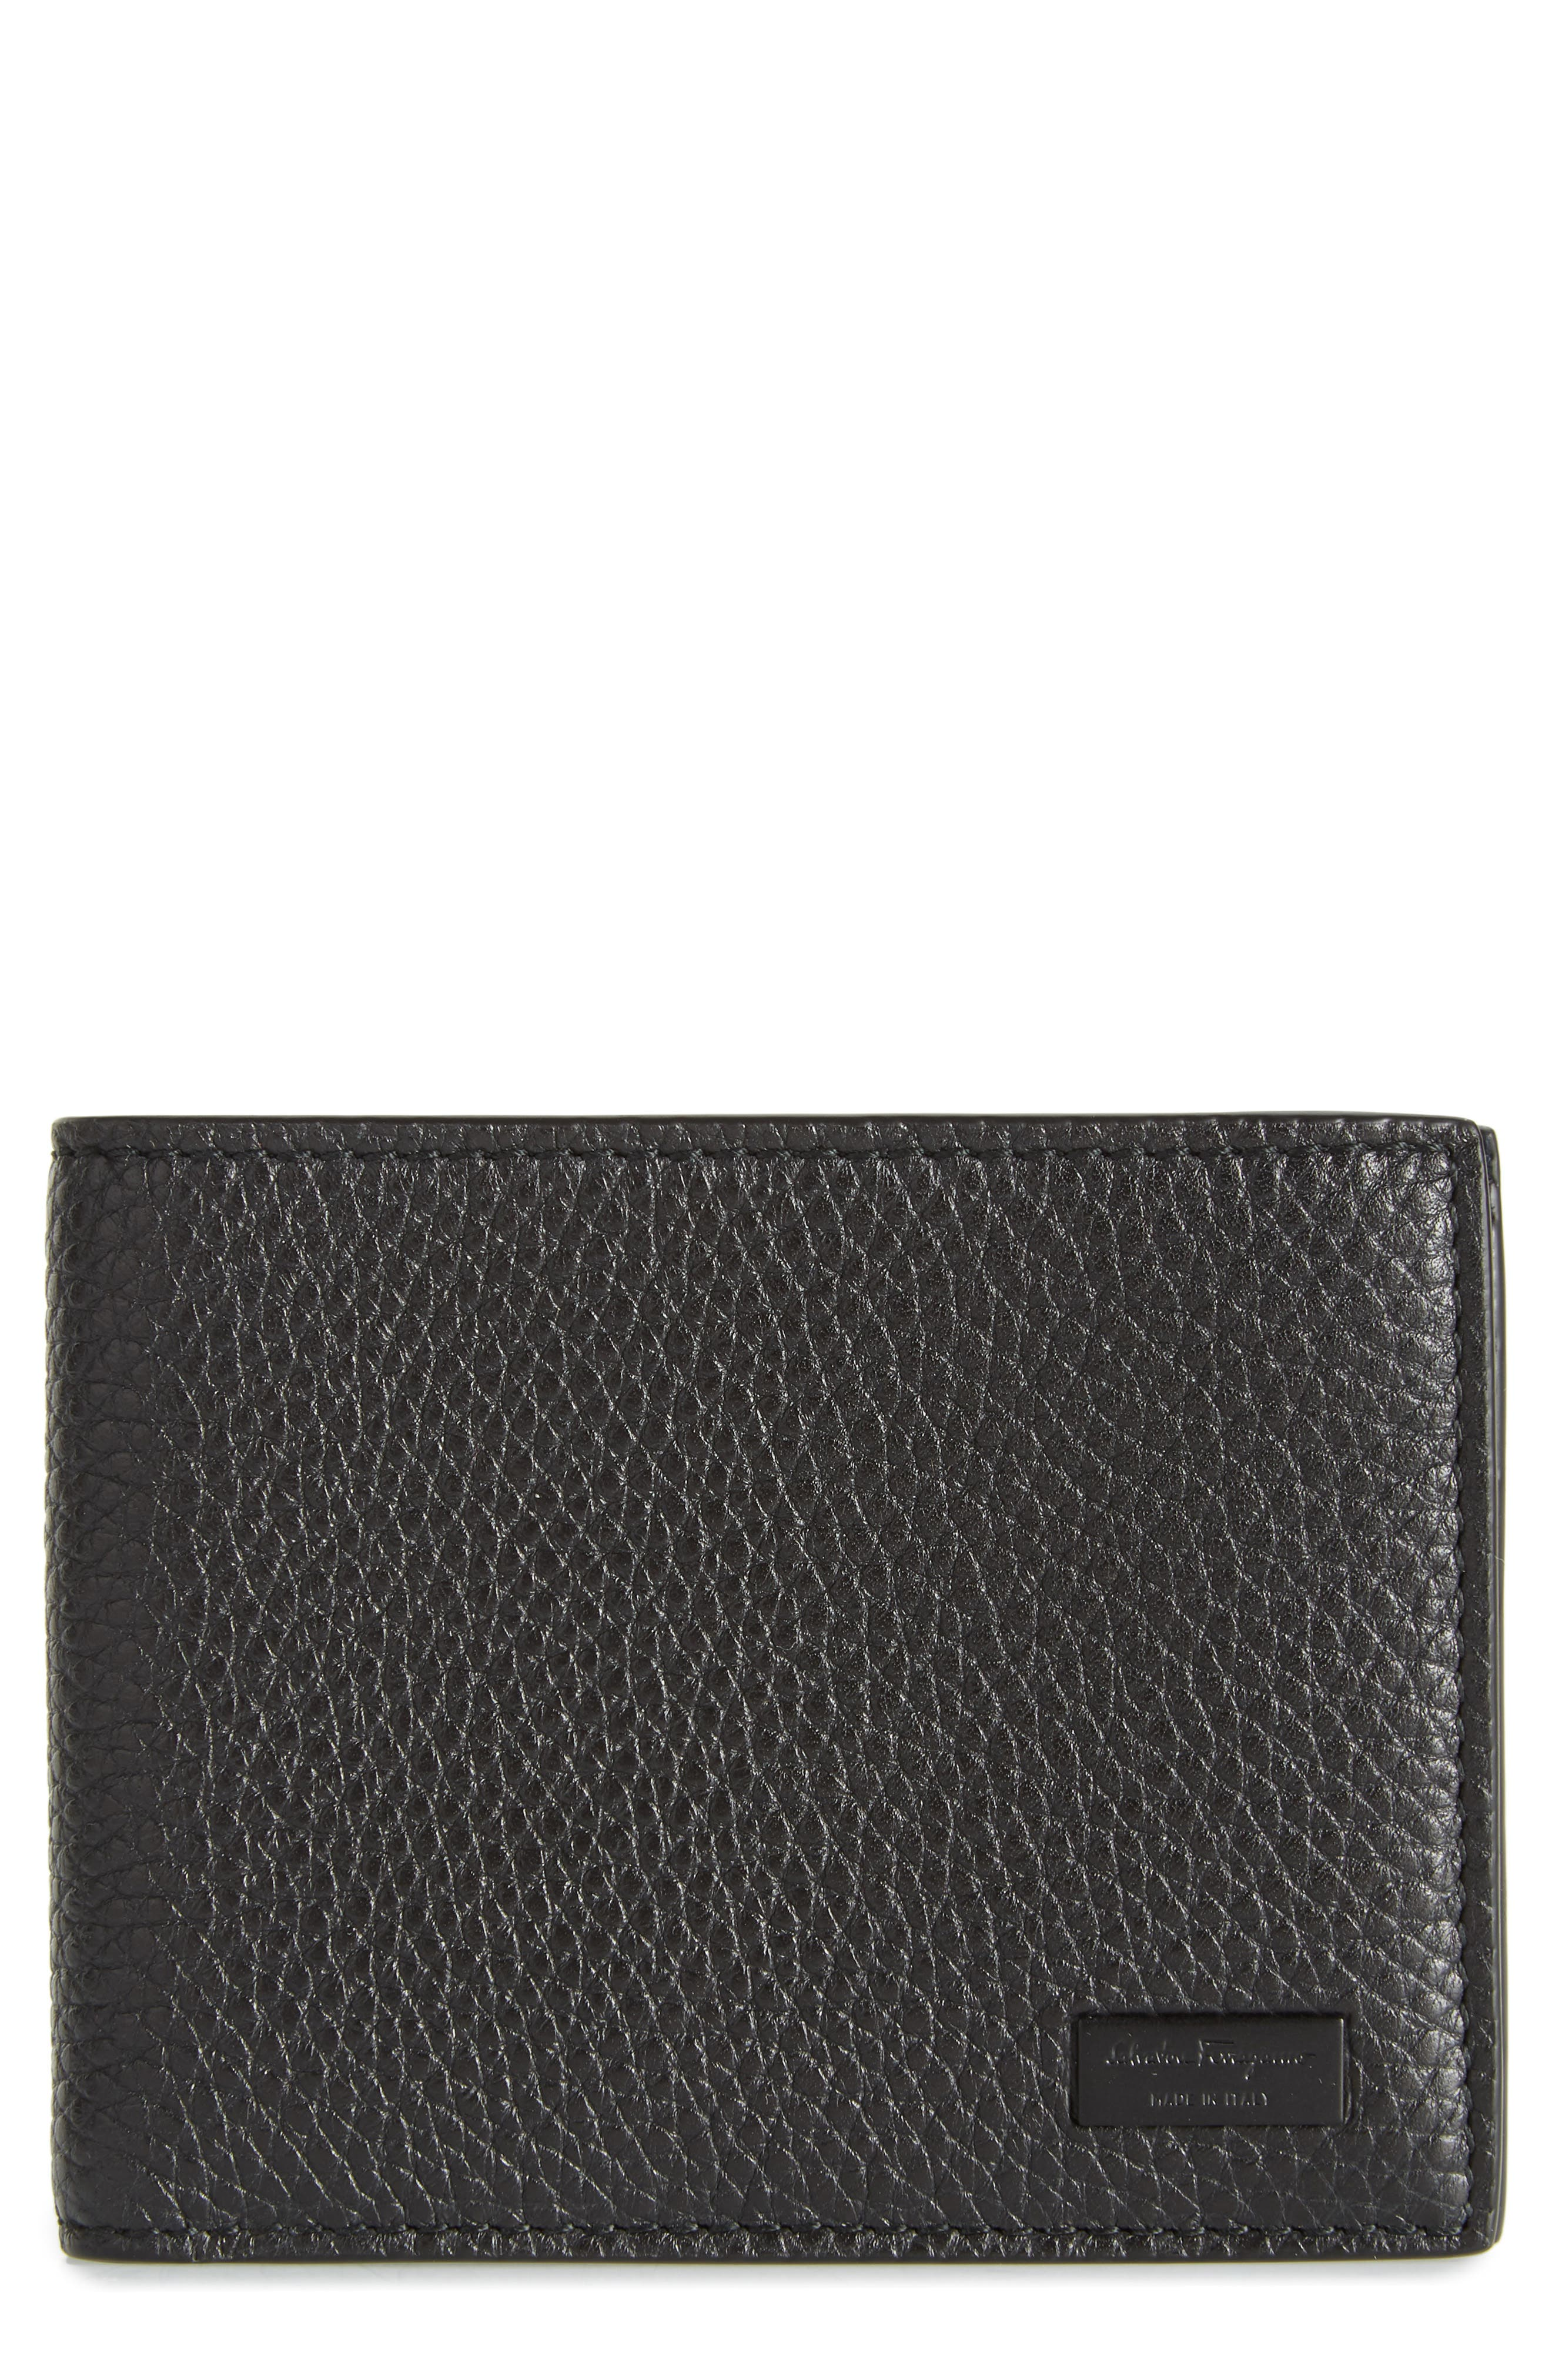 New Firenze Leather Wallet,                         Main,                         color, NERO